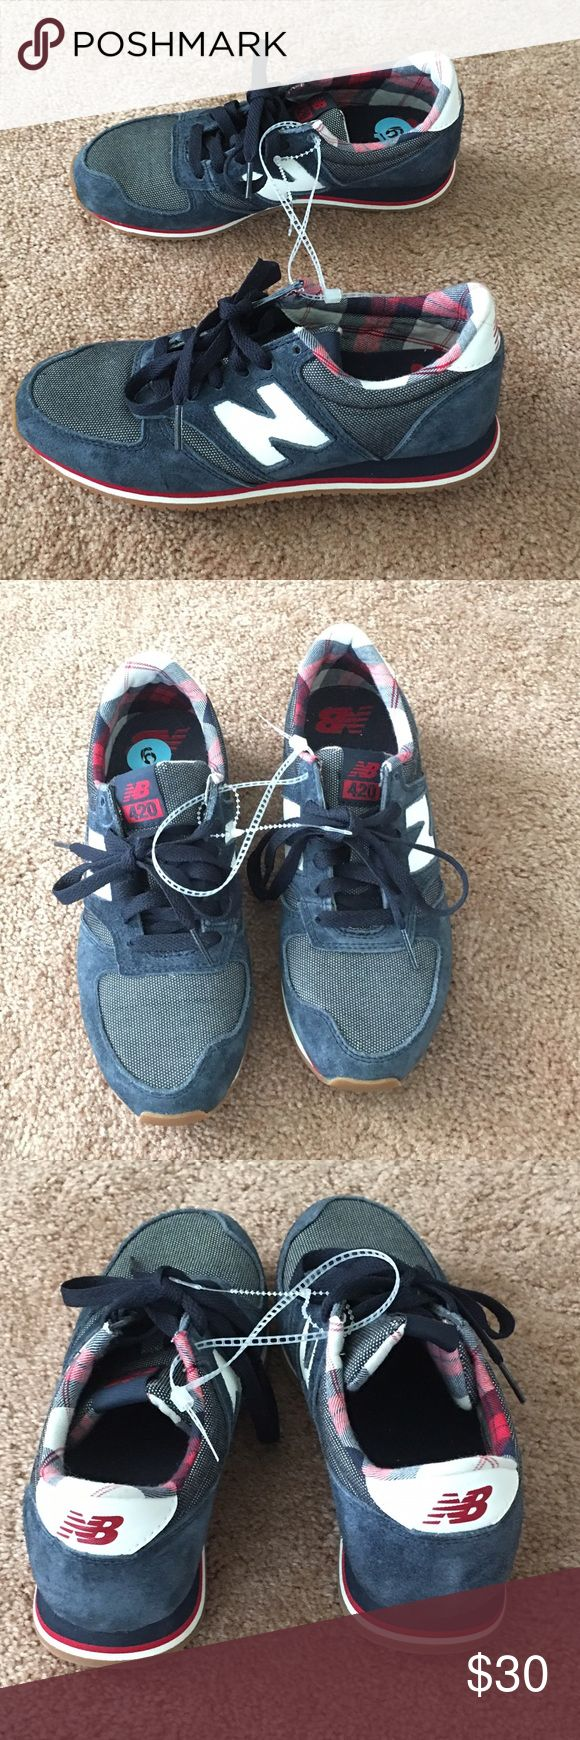 New Balance shoes, size 6, new. Red/white/blue. Never worn New Balance 420 women's size 6 athletic shoes. Red white and blue, meant to look kind of vintage with the fabric. Store tags are not attached but they have never been worn. New Balance Shoes Athletic Shoes